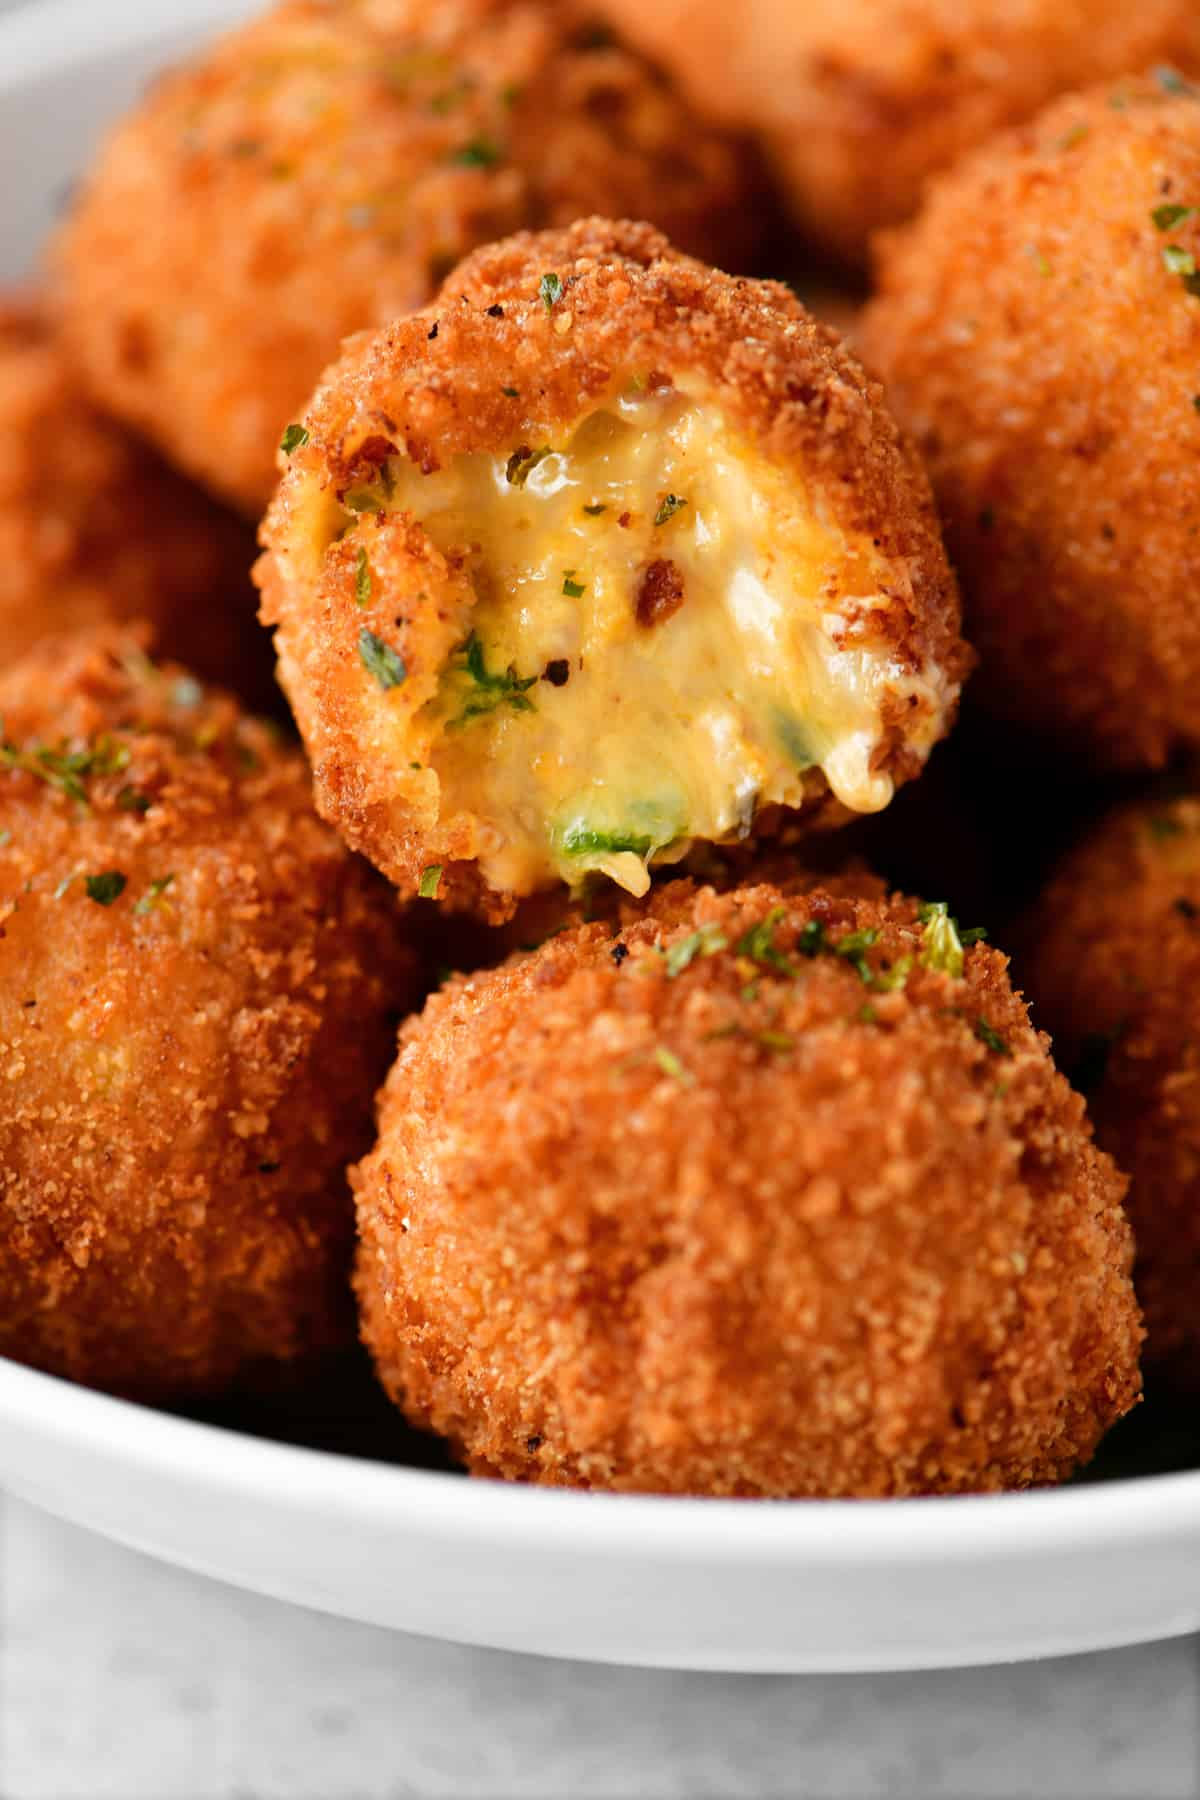 A bowl of cheesy bites covered in breading, they look deep fried, and there are pieces of jalapenos and bacon in them.